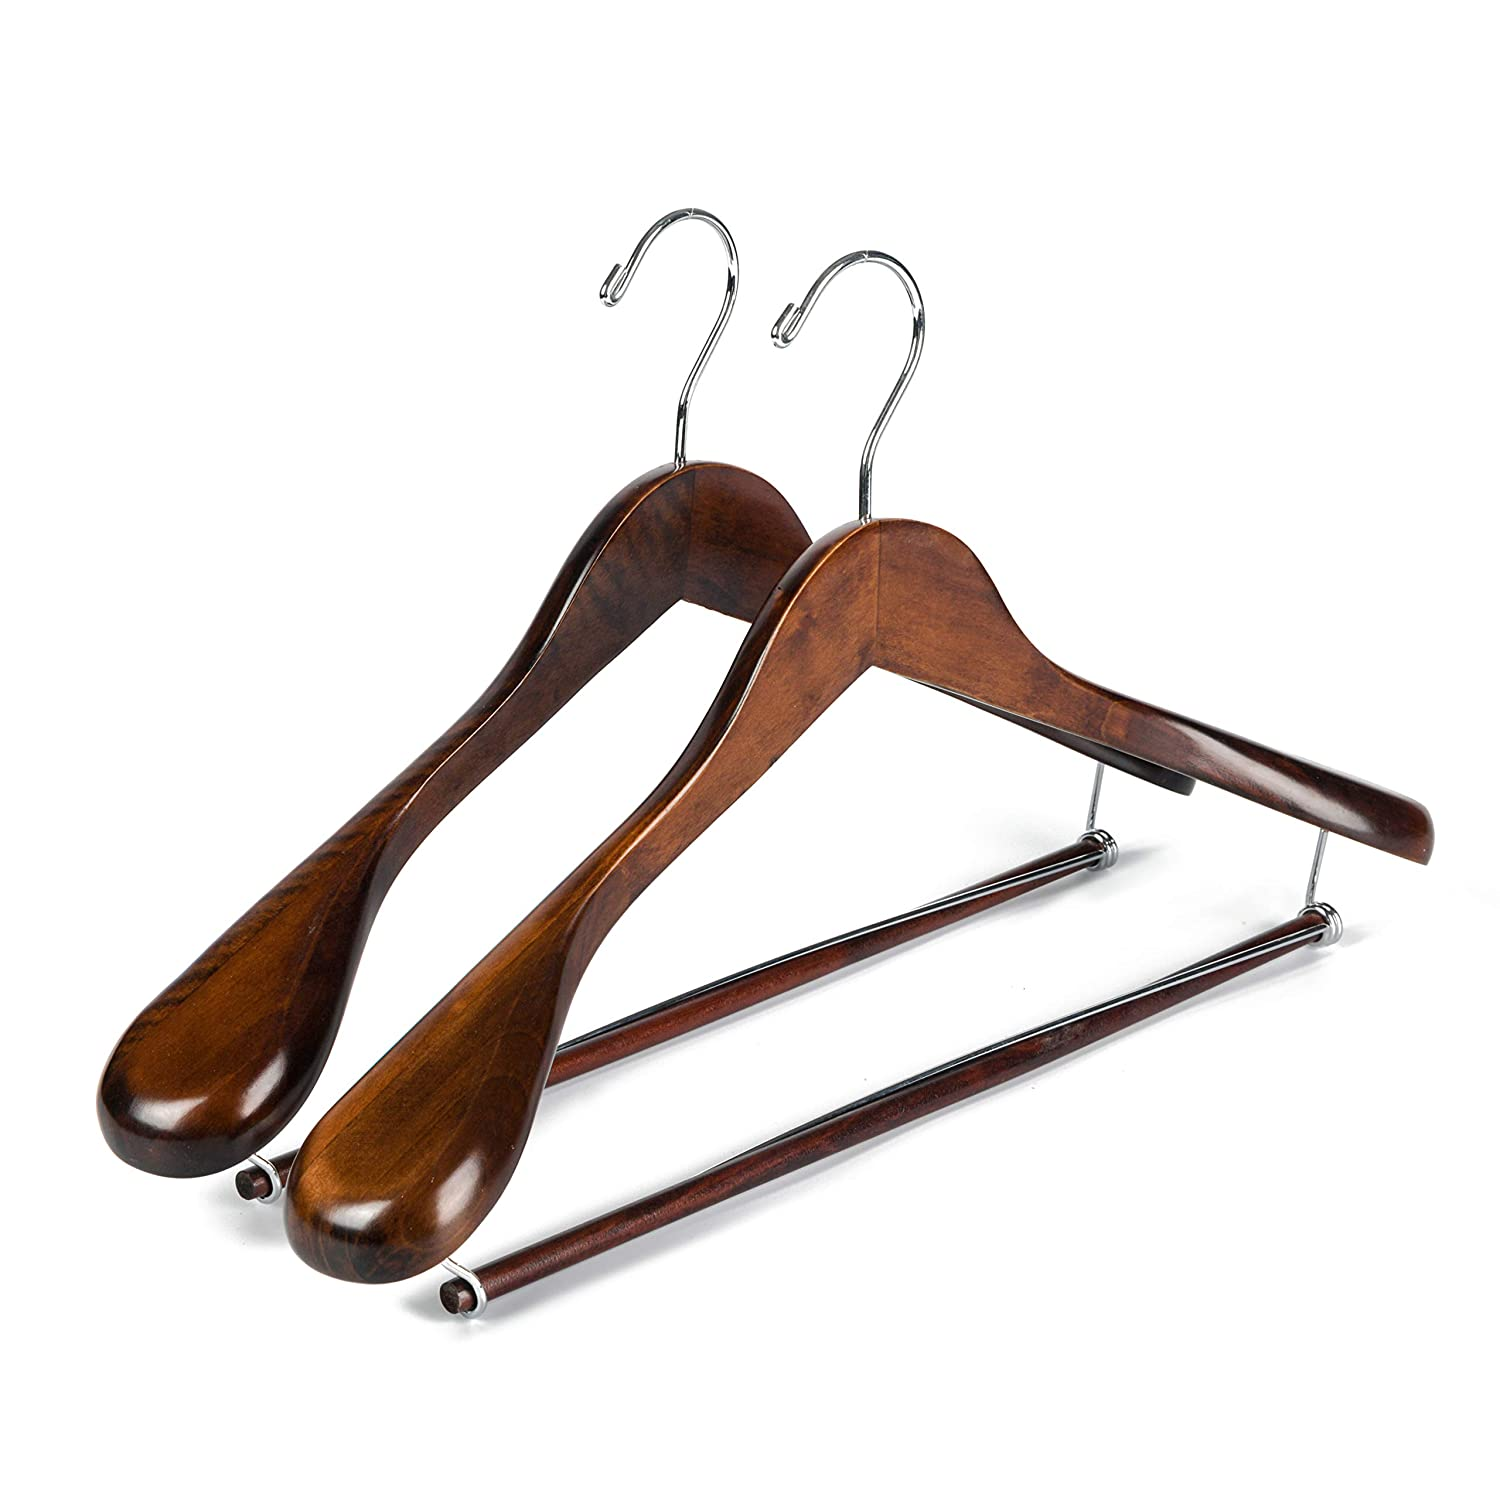 2, Retro Quality Luxury Wooden Suit Hangers Wide Wood Hanger for Coats and Pants with Locking Bar Great for Travelers Heavy Duty